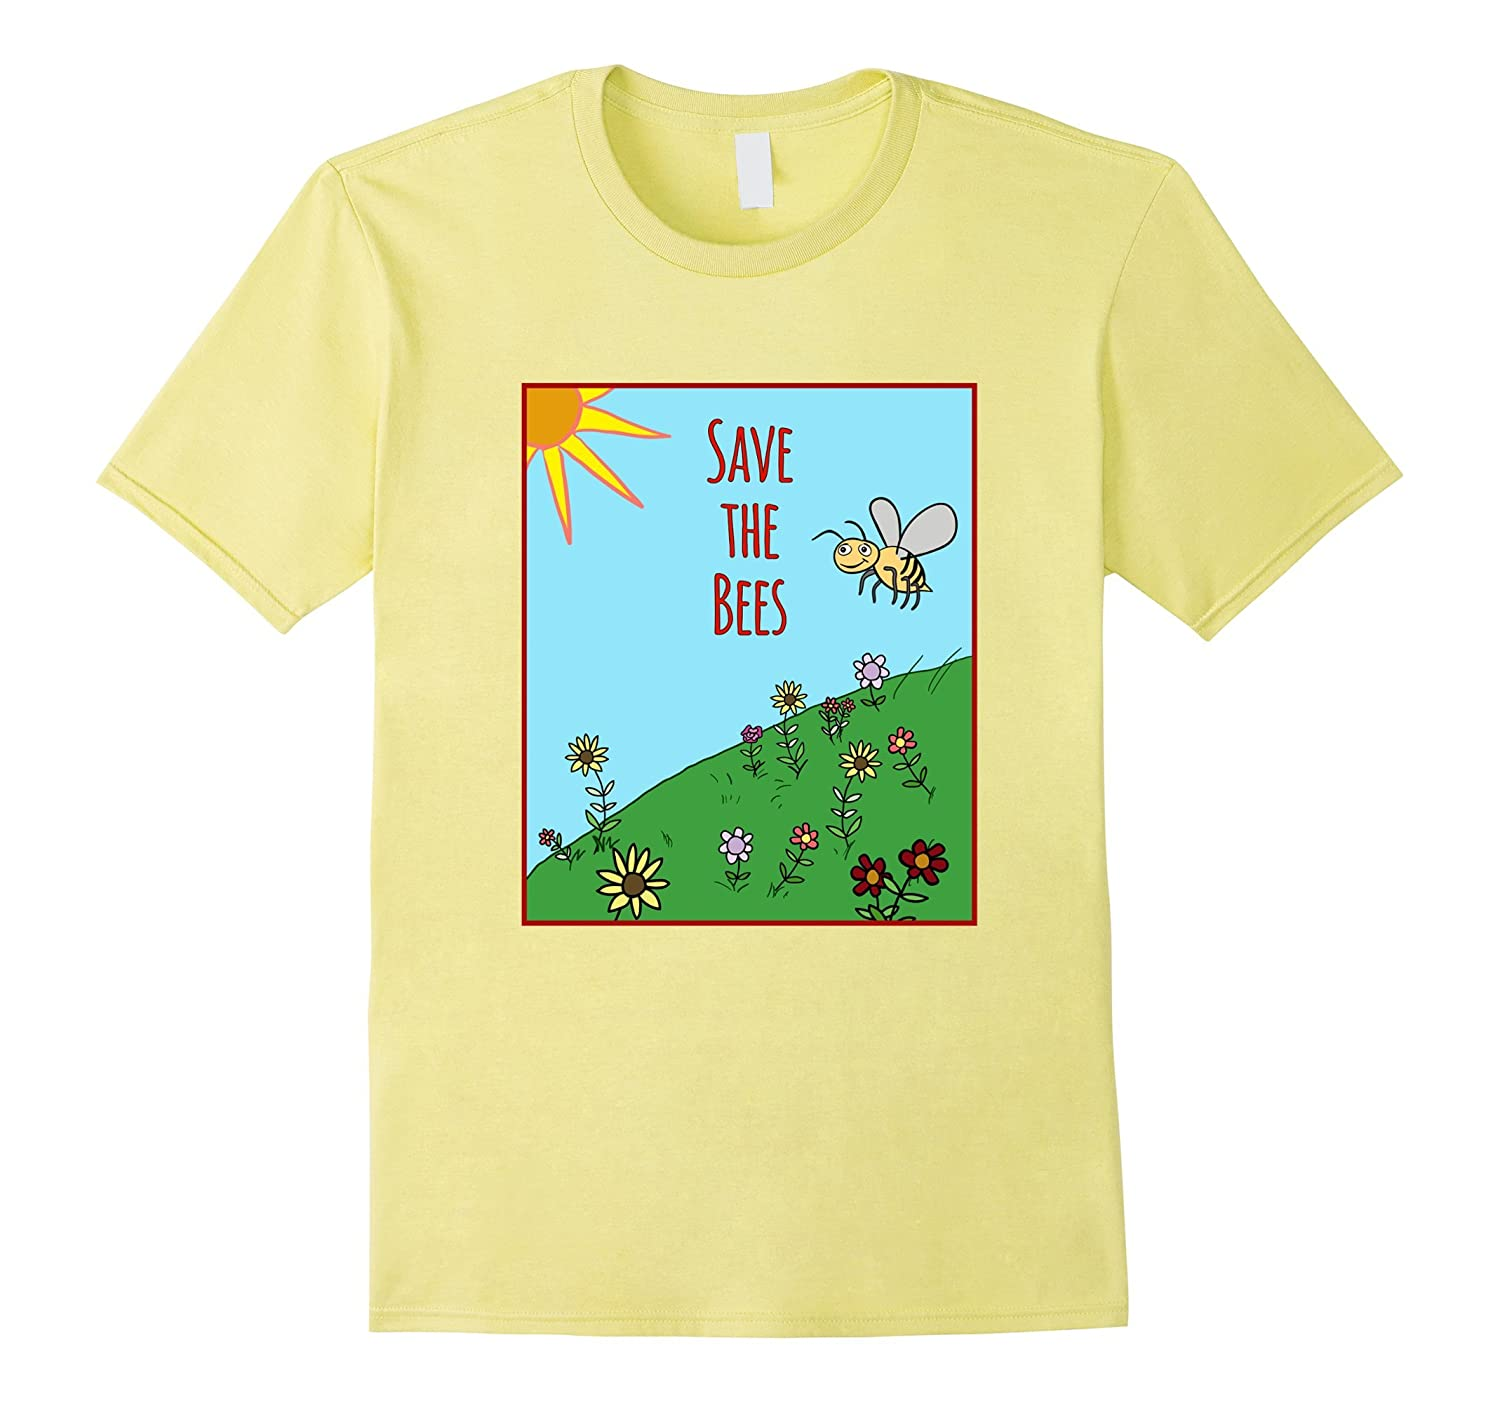 Save the Bees Artsy T-Shirt For Gardeners And Bee Lovers-TD